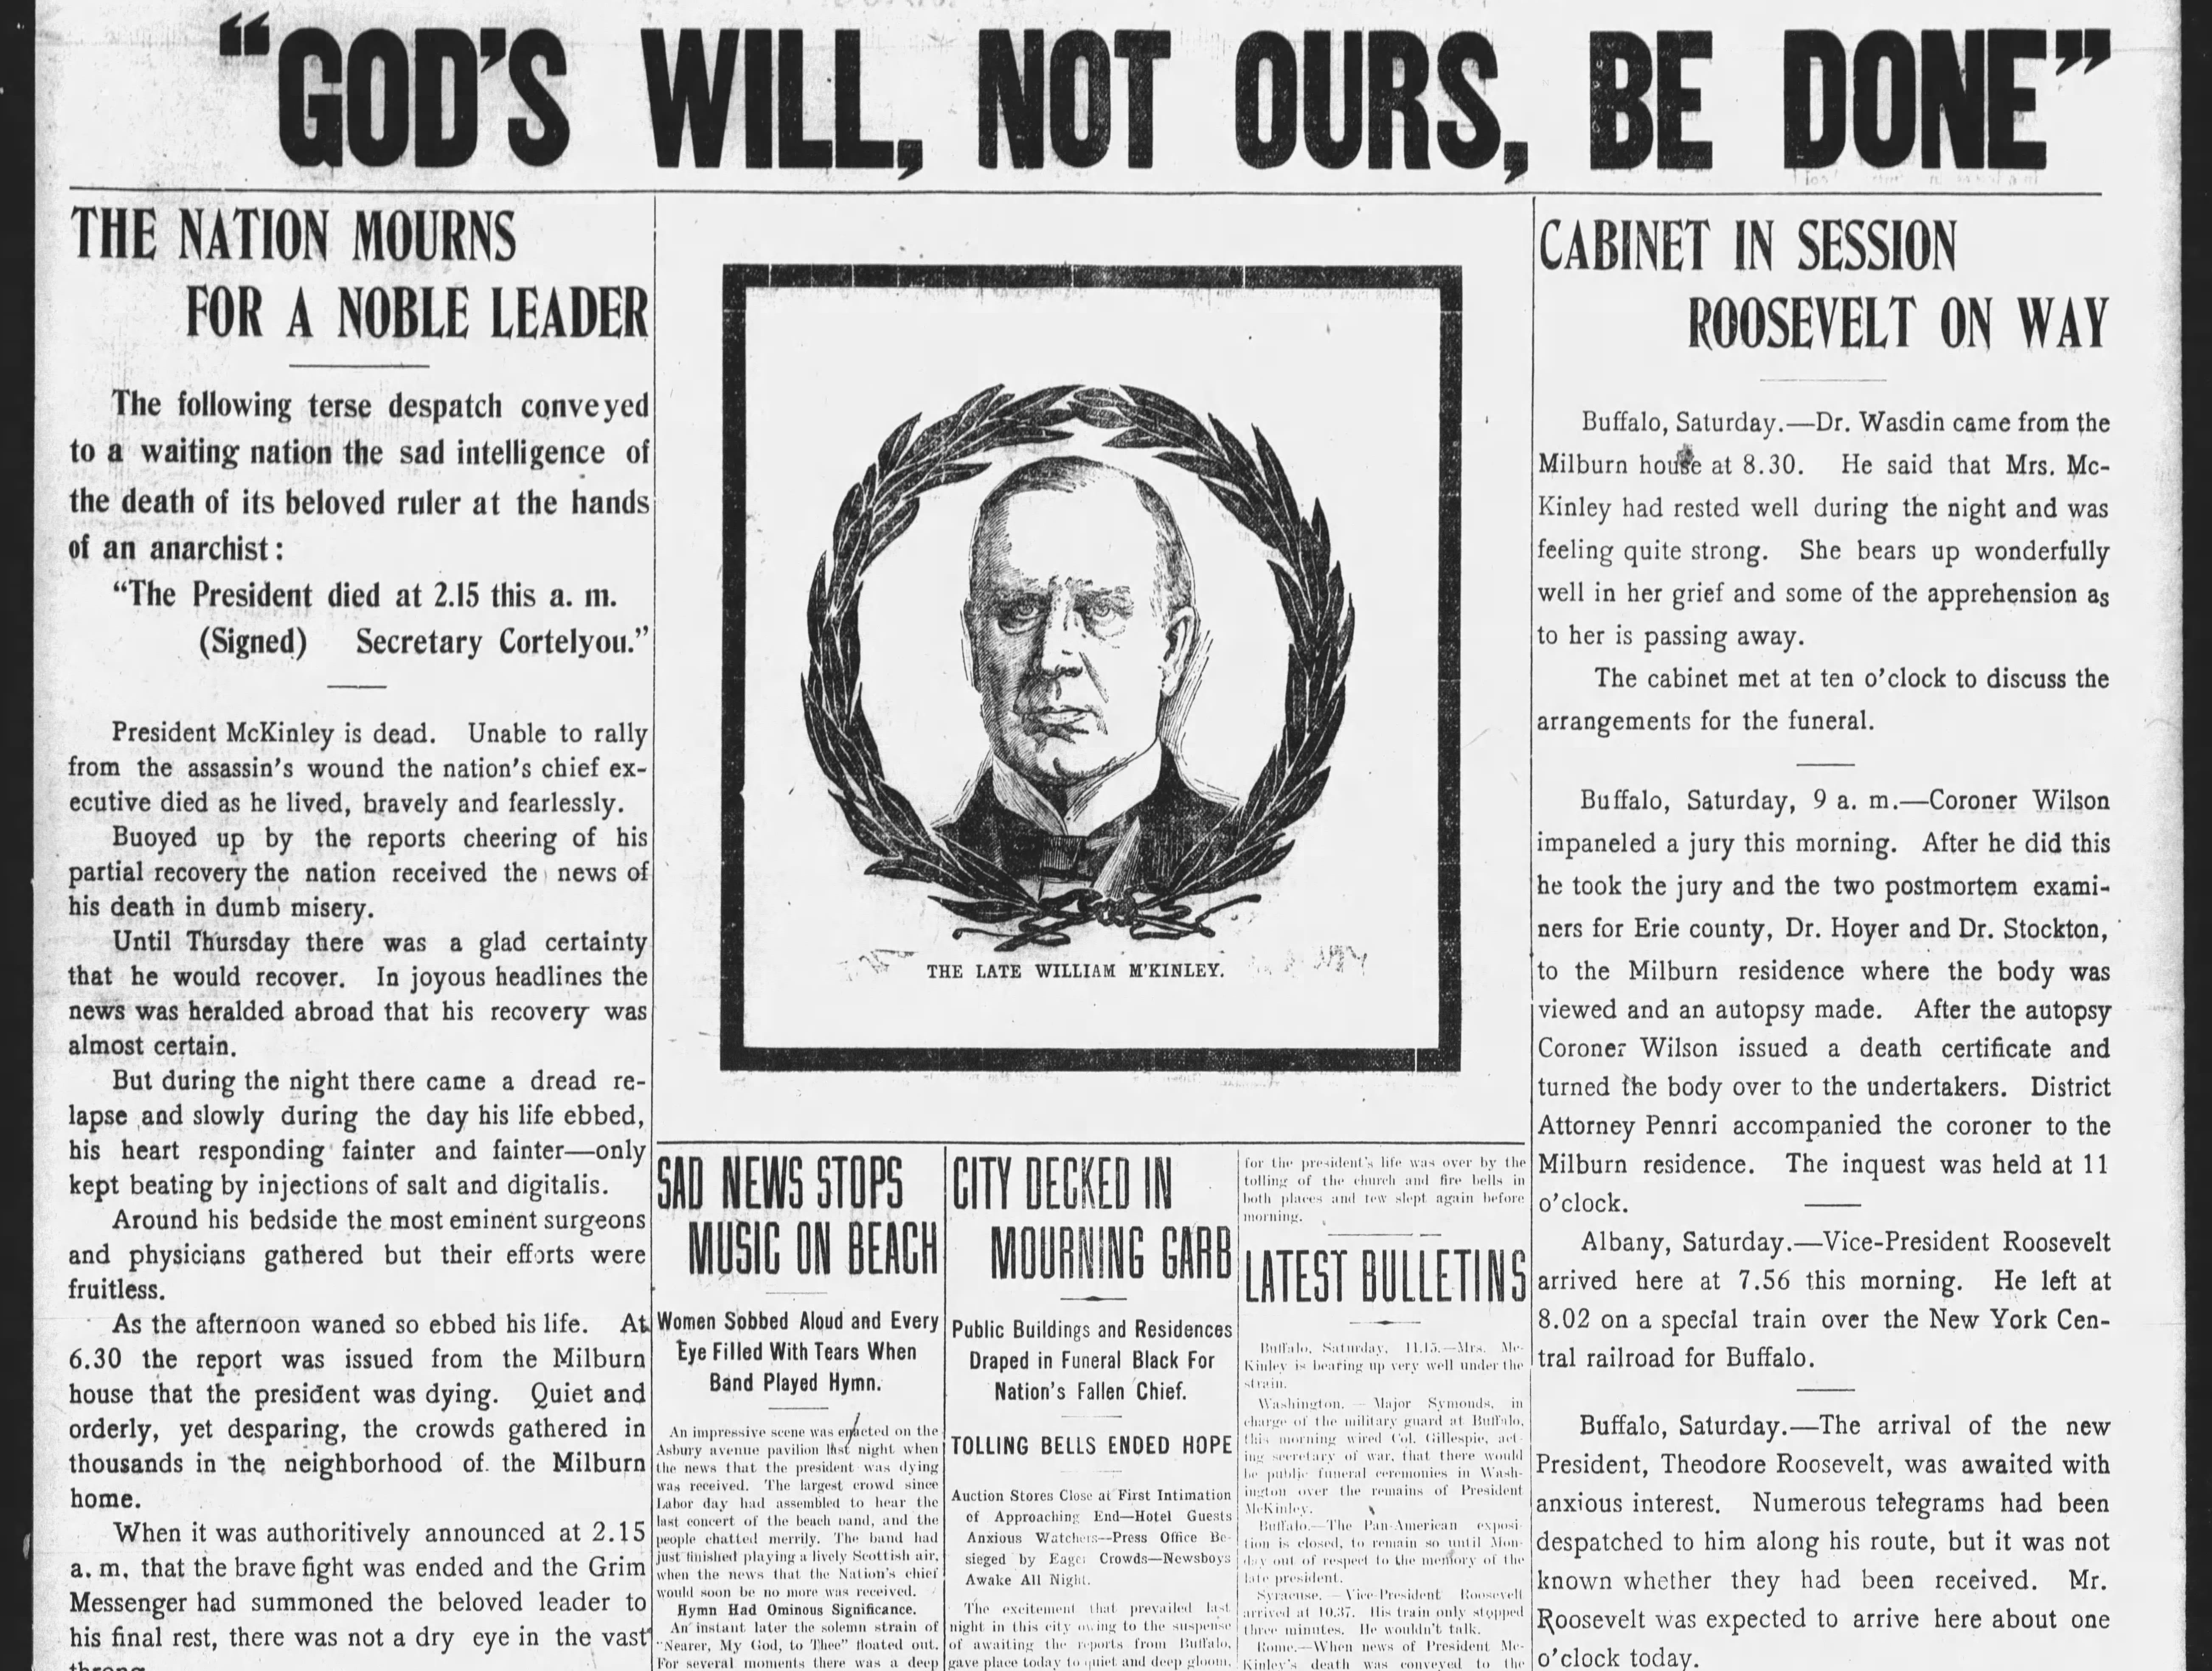 The Asbury Park Press reports President William McKinley's last words in a banner headline on Saturday, Sept. 14, 1901, the same day he dies from wounds suffered by an assassin's bullets in Buffalo, New York. Vice President Theodore Roosevelt is sworn in as the 26th president of the United States.